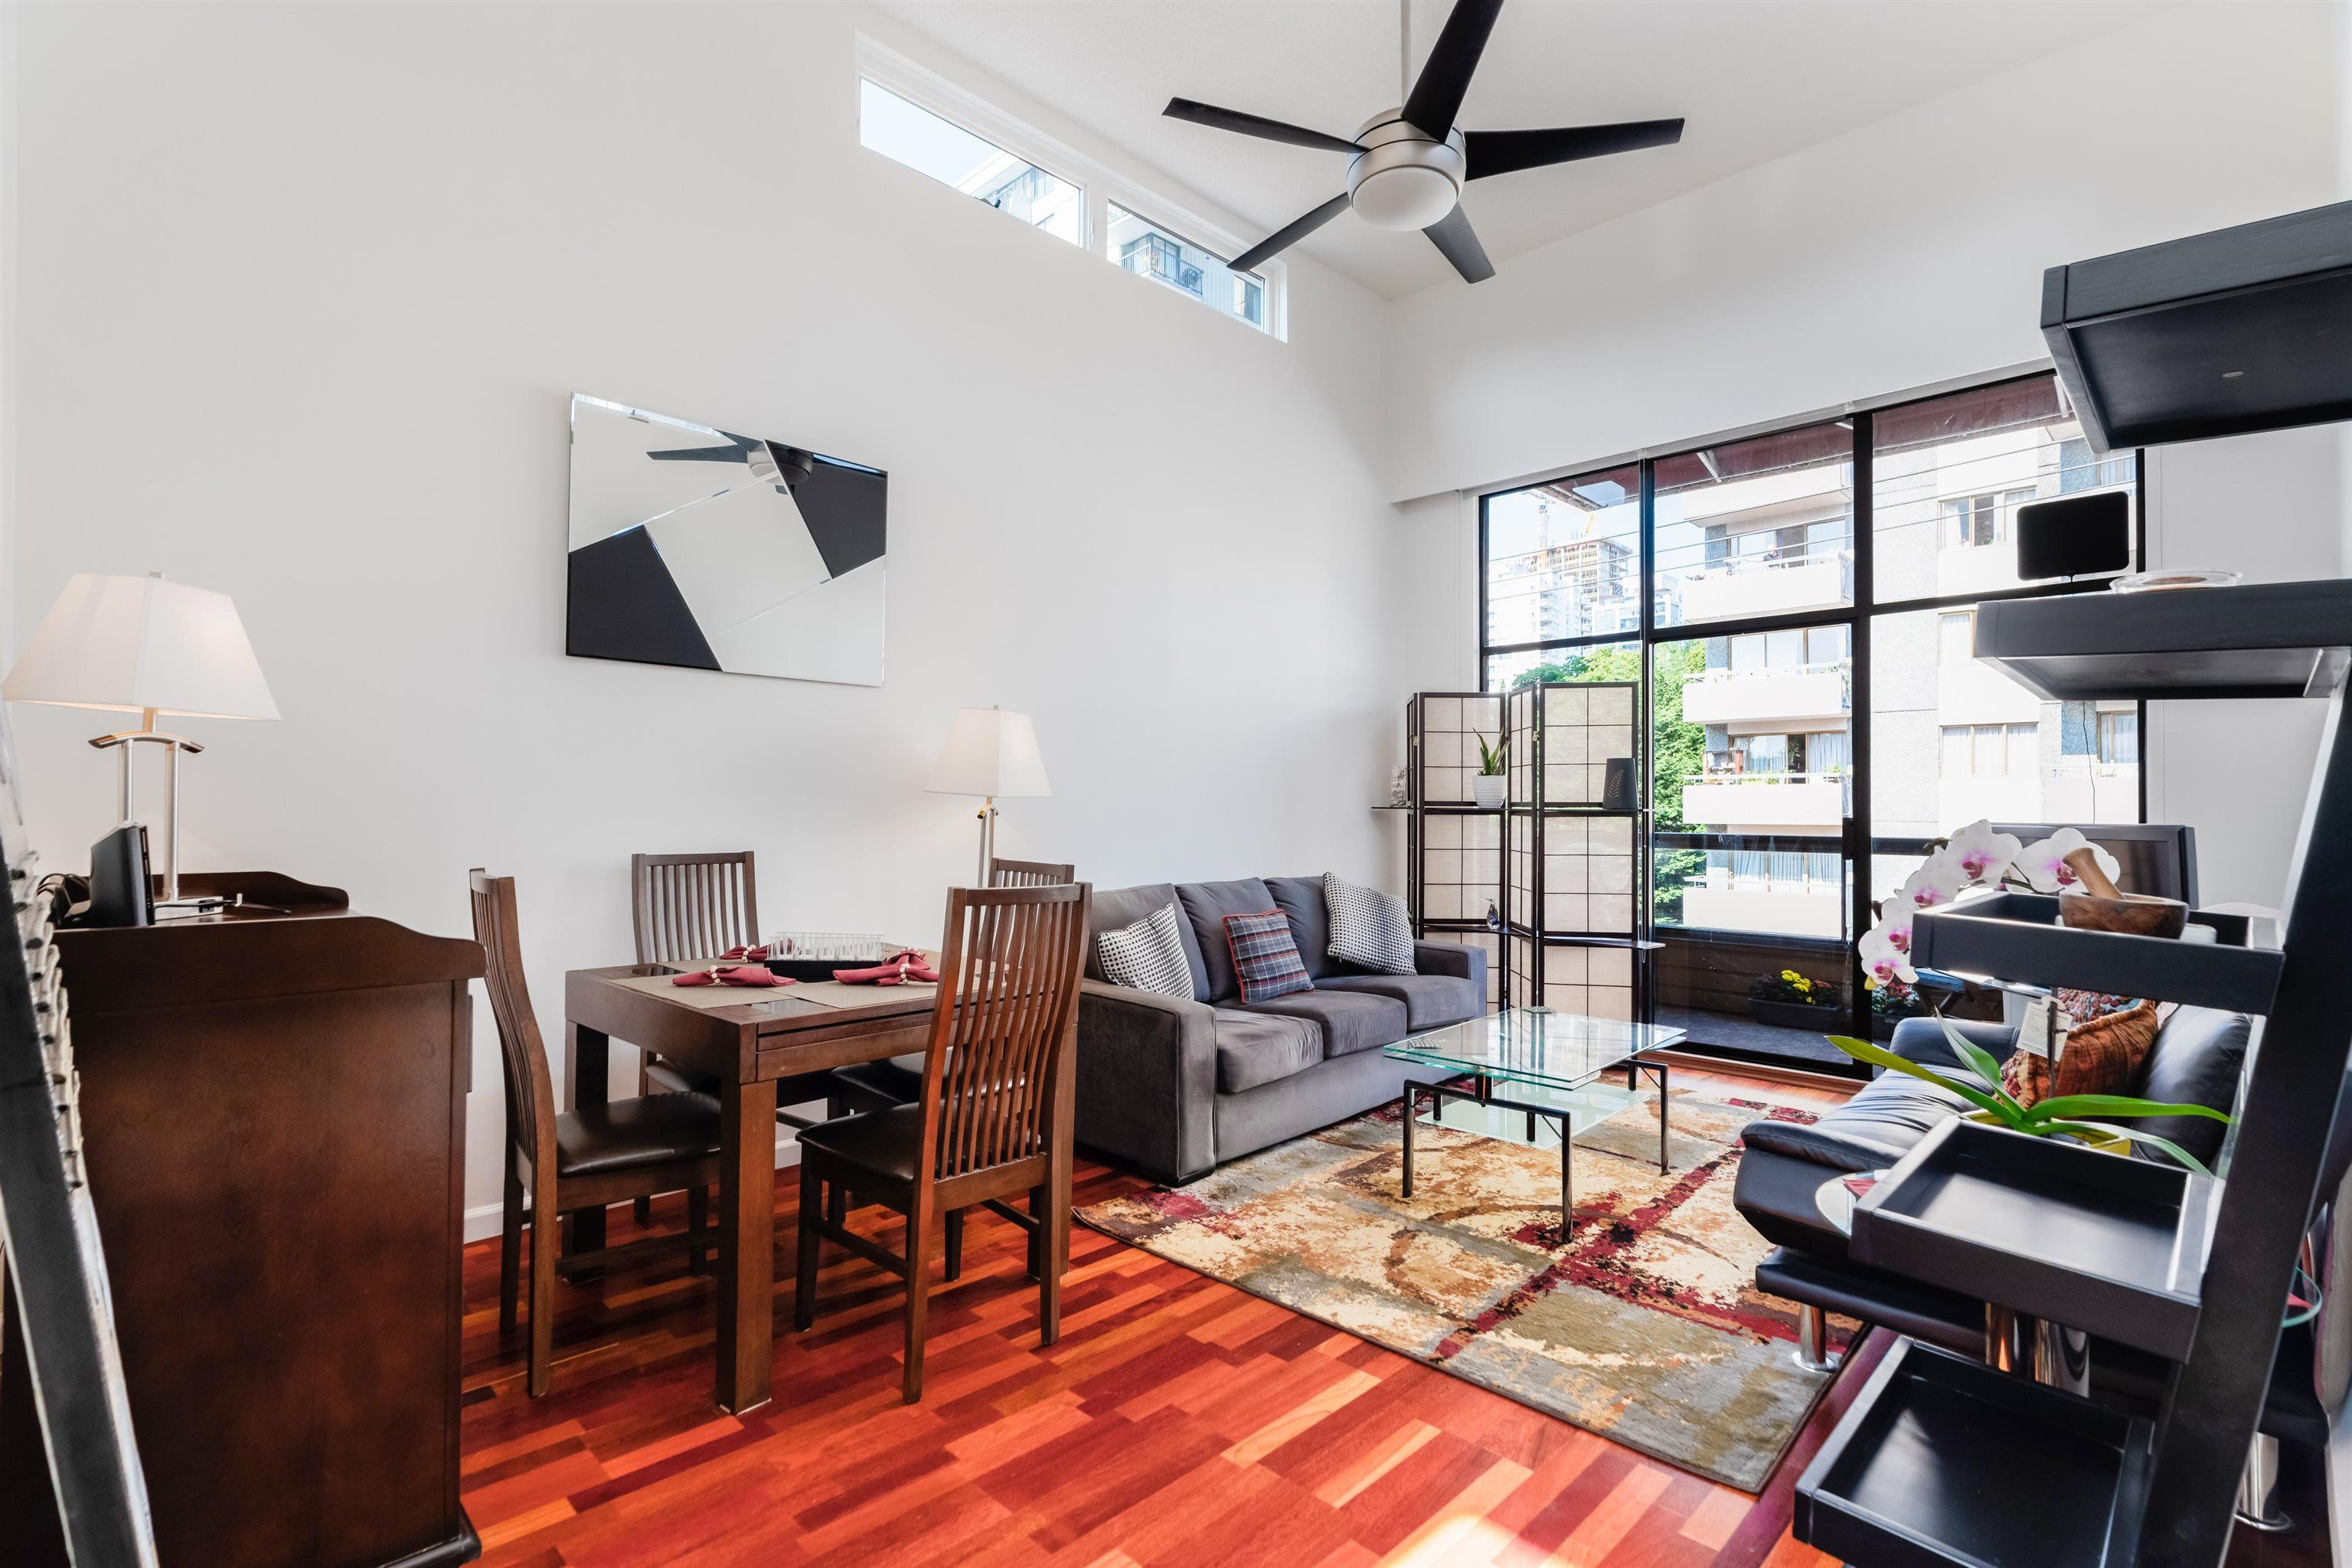 """Main Photo: PH4 1435 NELSON Street in Vancouver: West End VW Condo for sale in """"WESTPORT"""" (Vancouver West)  : MLS®# R2615558"""